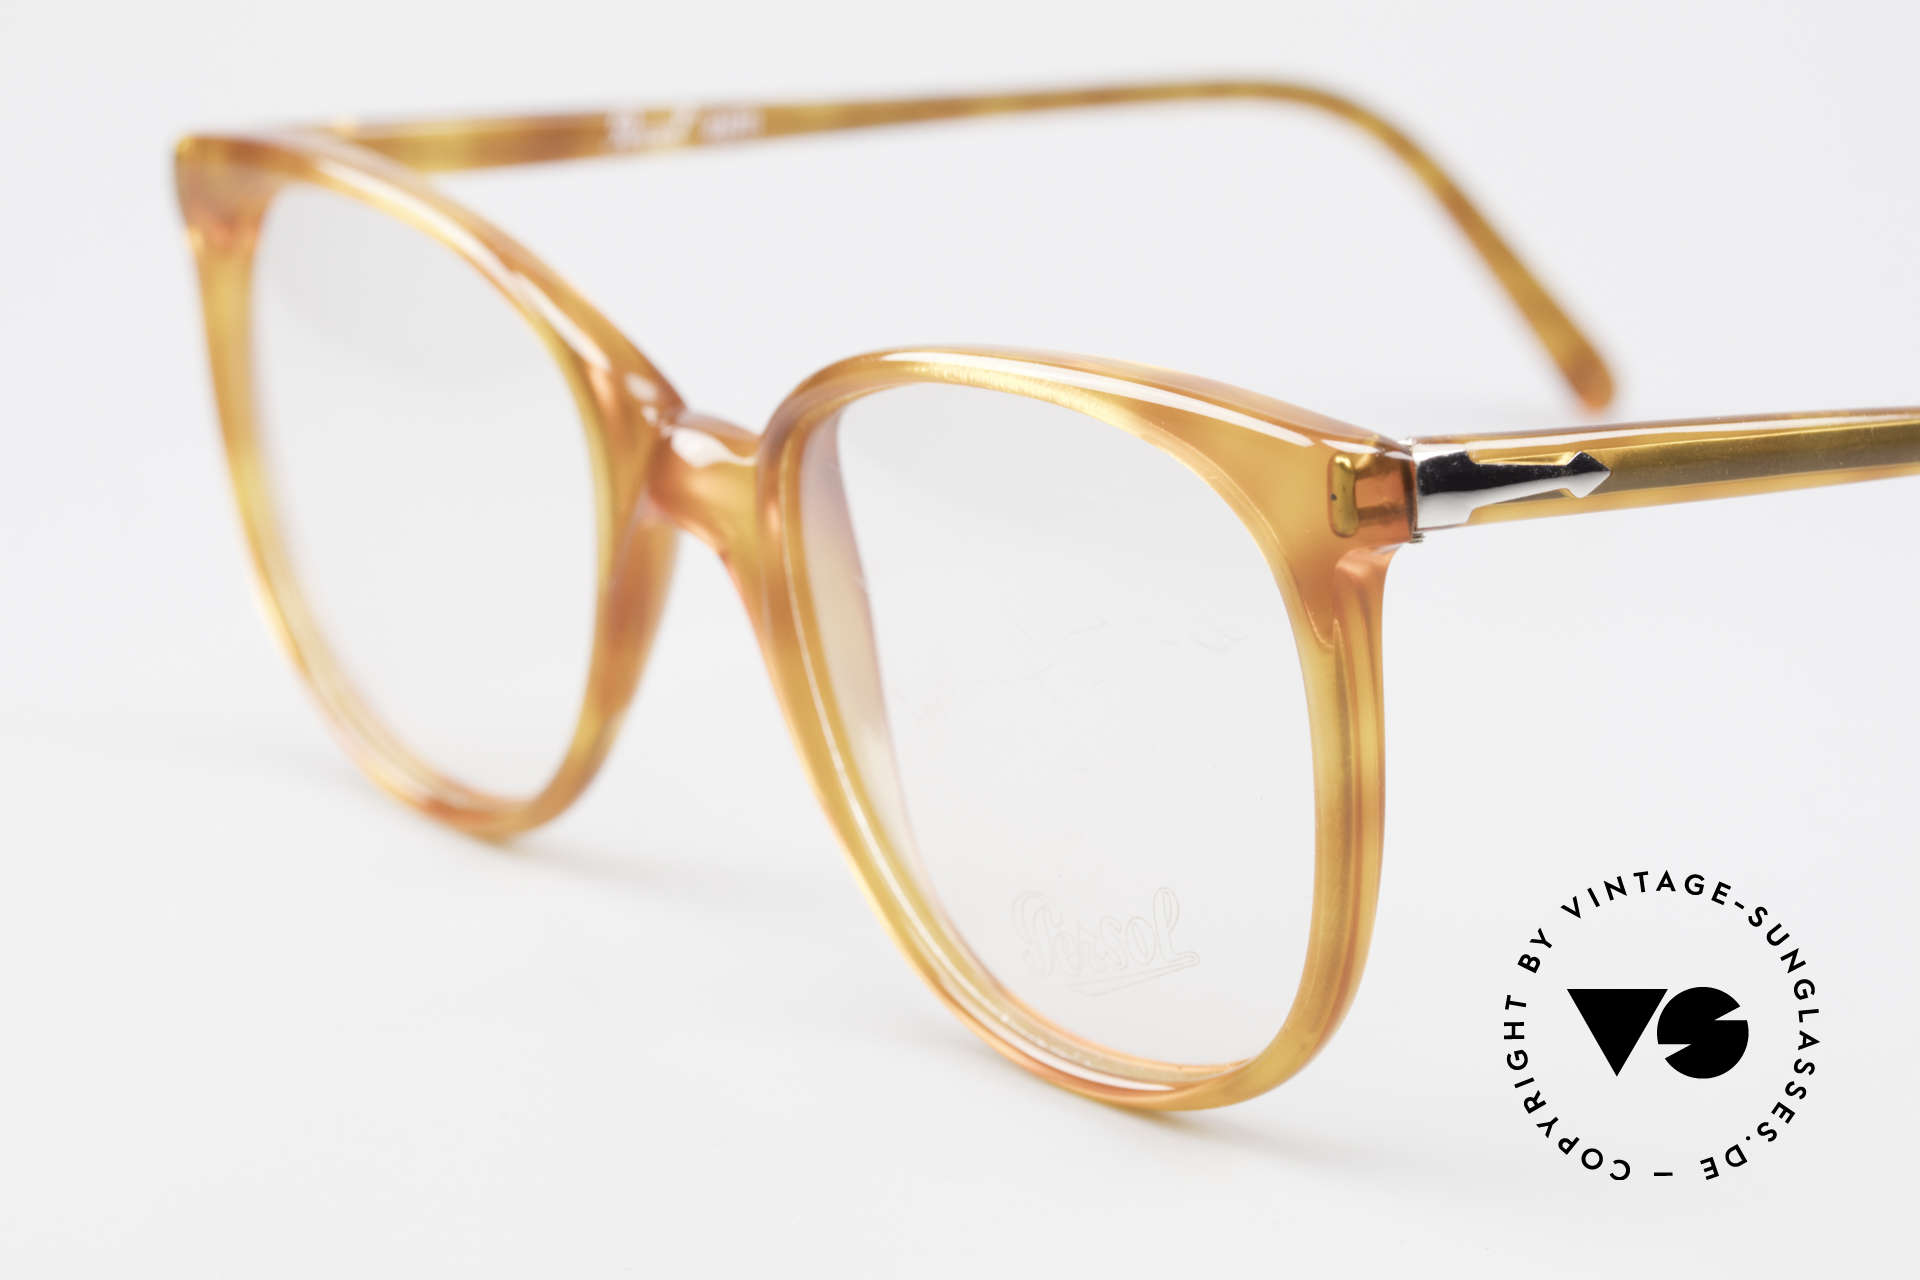 Persol 09181 Ratti Old Vintage Eyeglasses 80's, never worn (like all our vintage frames by Persol), Made for Men and Women